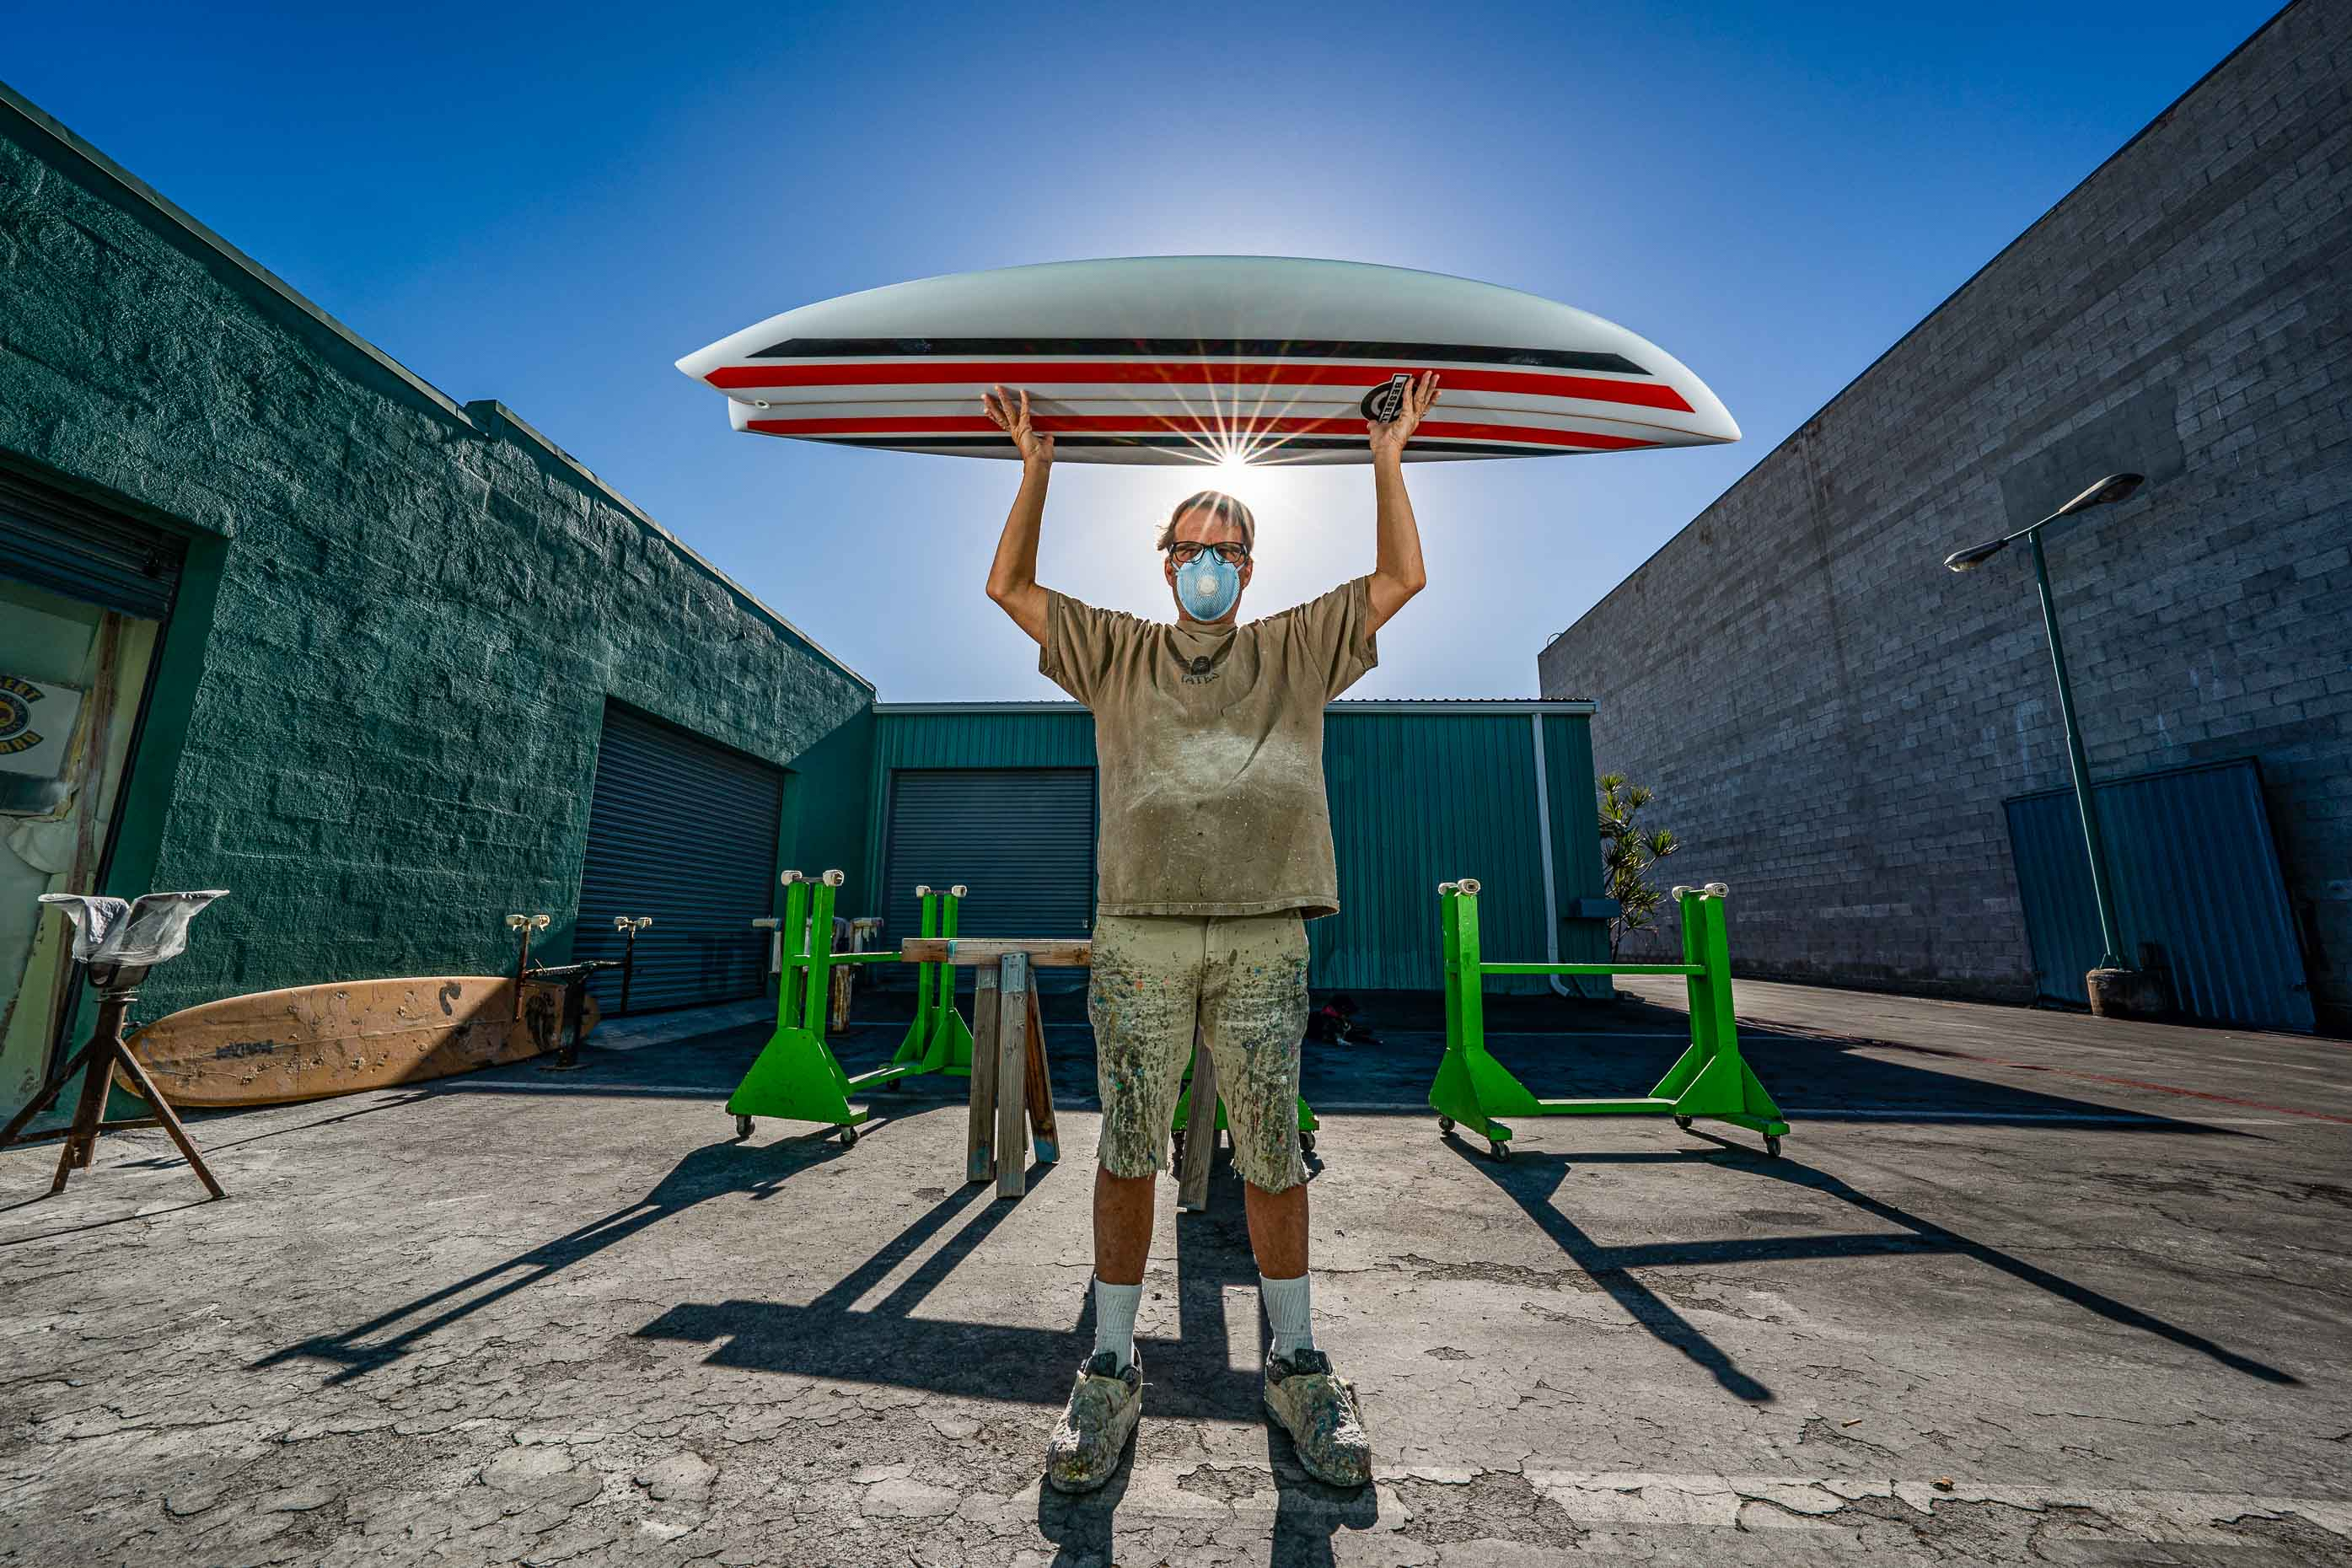 aaron-ingrao-keepers-of-the-craft-tim-bessell-surfboards-san-diego-6389-Edit